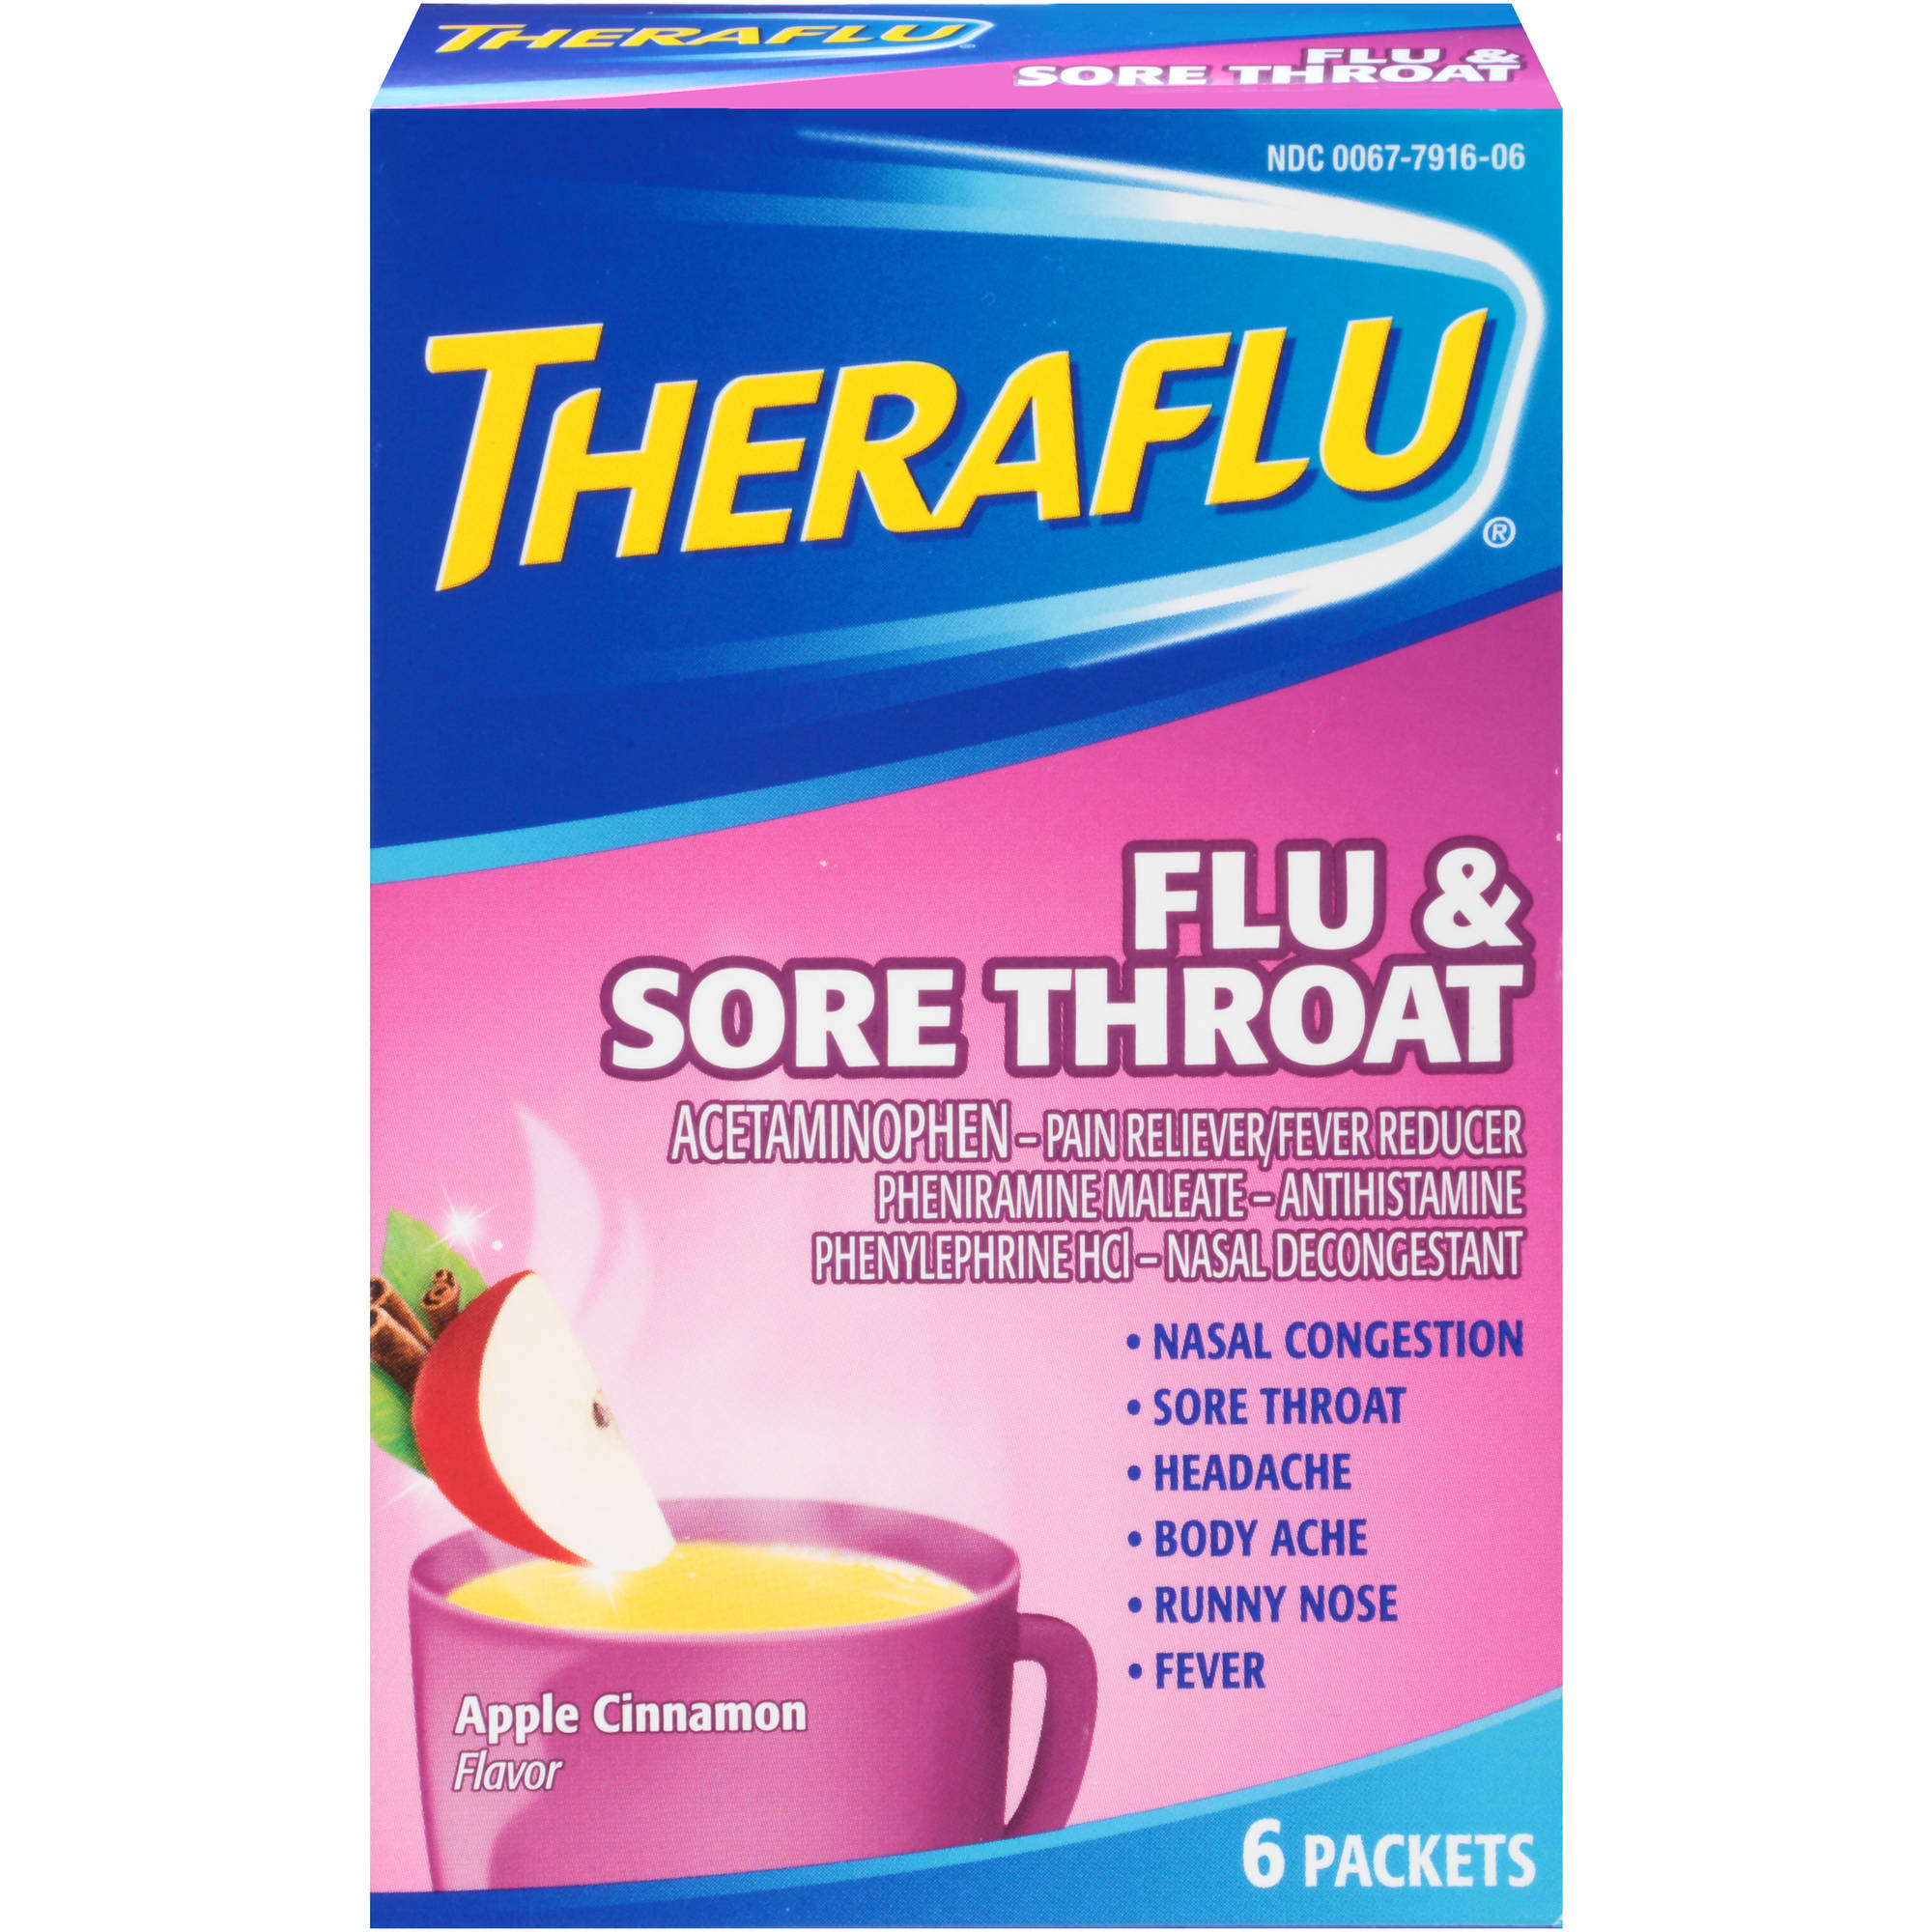 Theraflu Flu & Sore Throat Hot Liquid Powder, Apple Cinnamon Flavor, 6 Packets